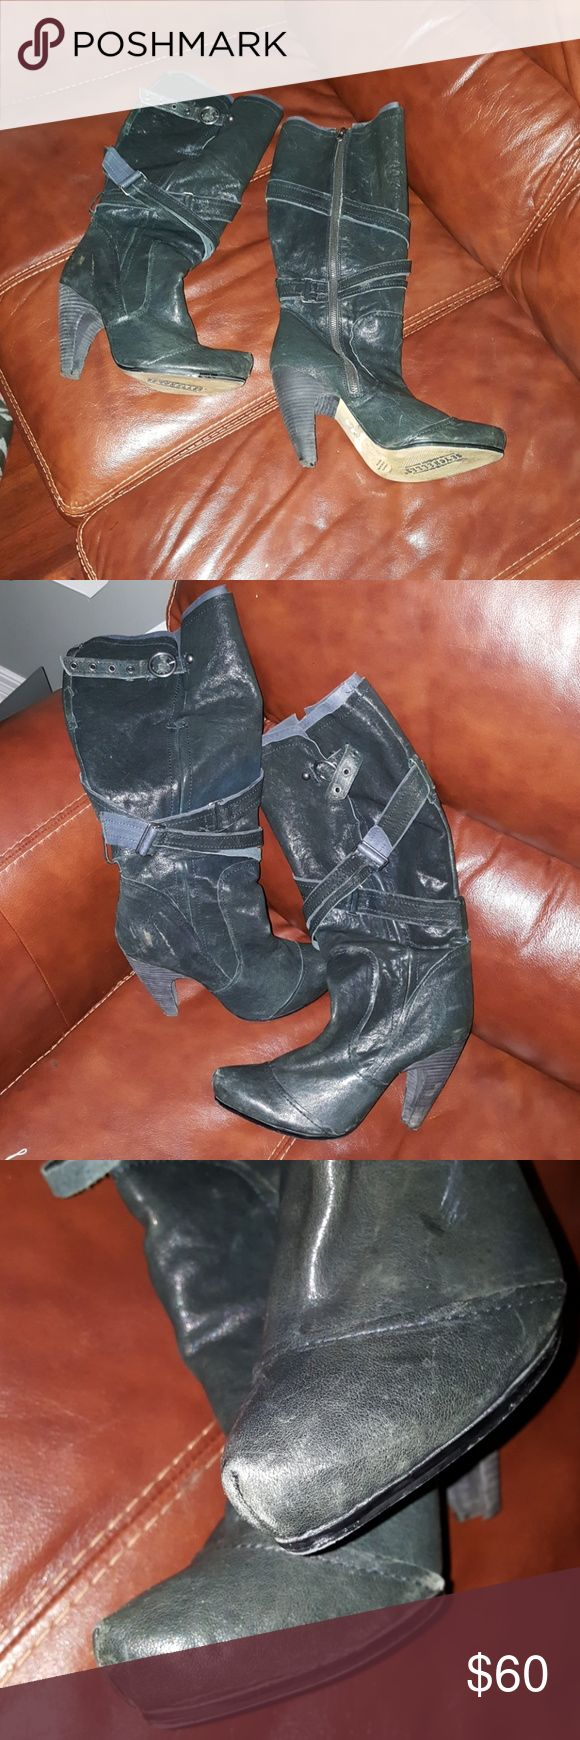 Seychelles Boots 10 Great quality leather. Some scuff marks . Nothing major. Beautiful  boots that will last for years. Seychelles Shoes Heeled Boots